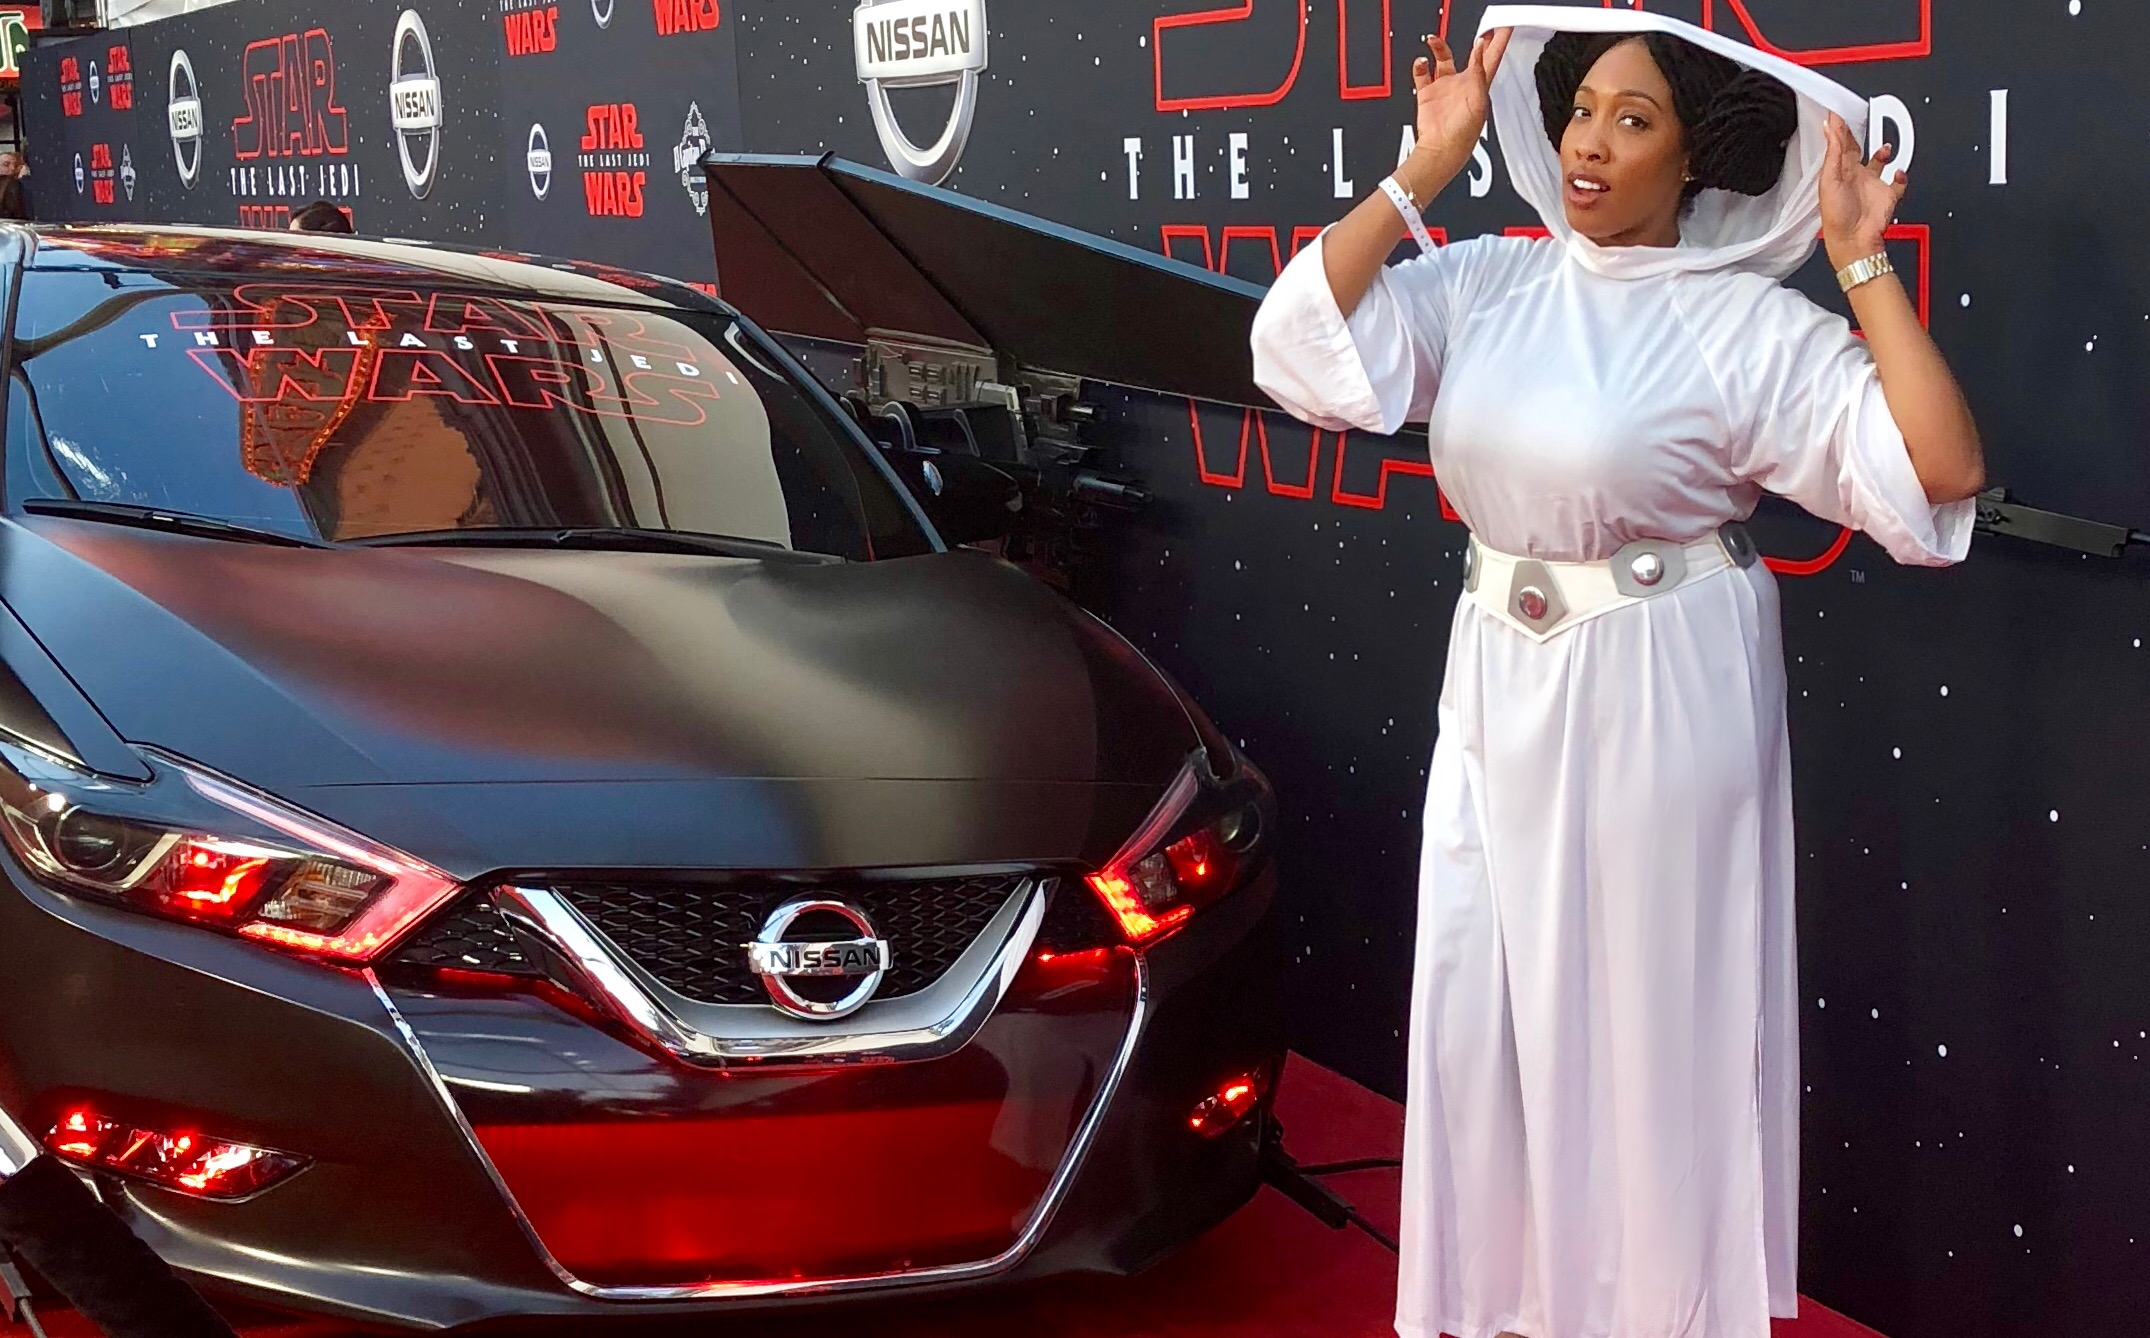 Nissan Strengthens The Force With Star Wars: The Last Jedi